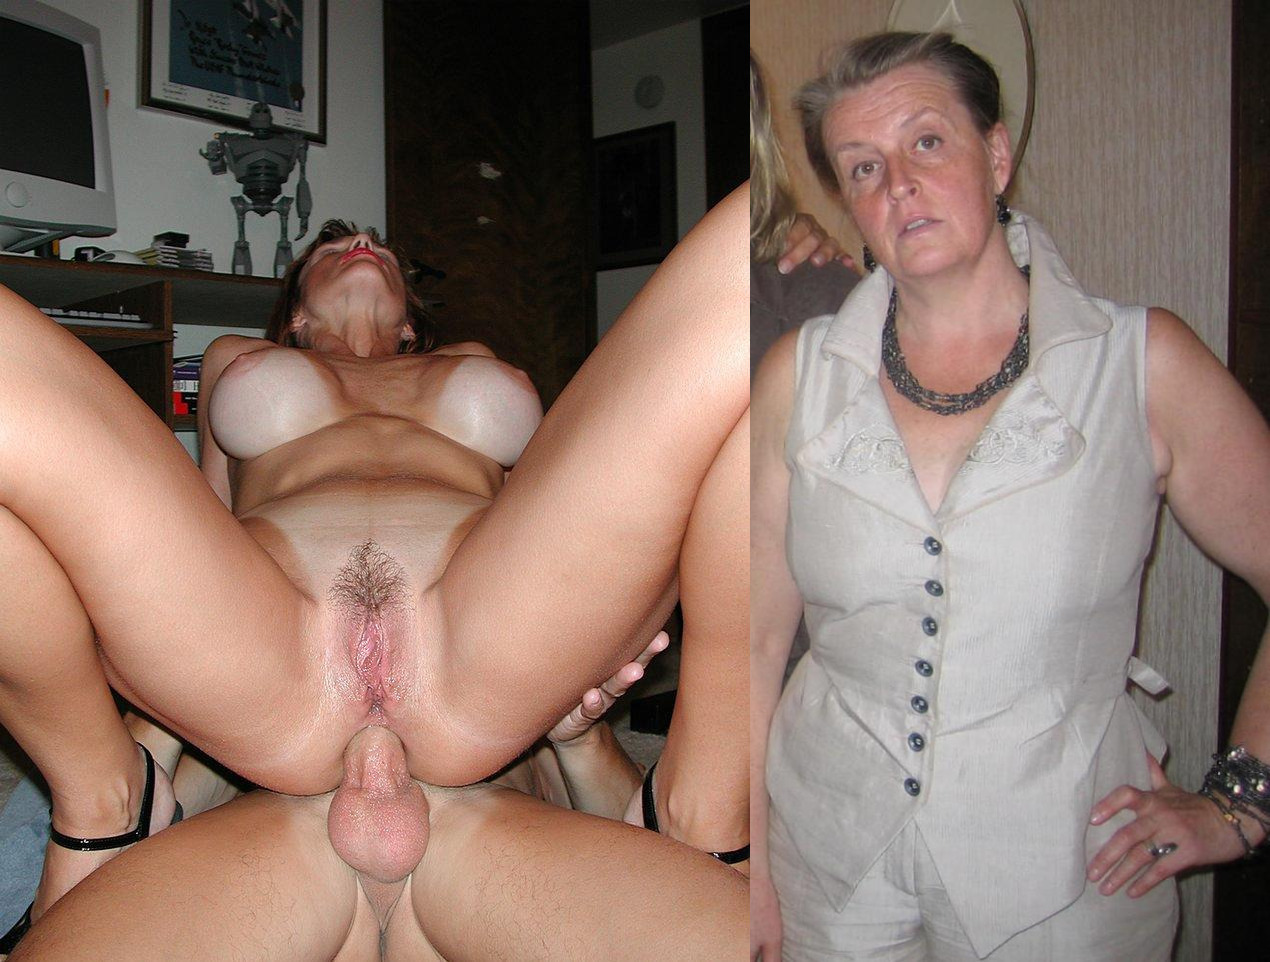 Rather Amateur nude milf homemade